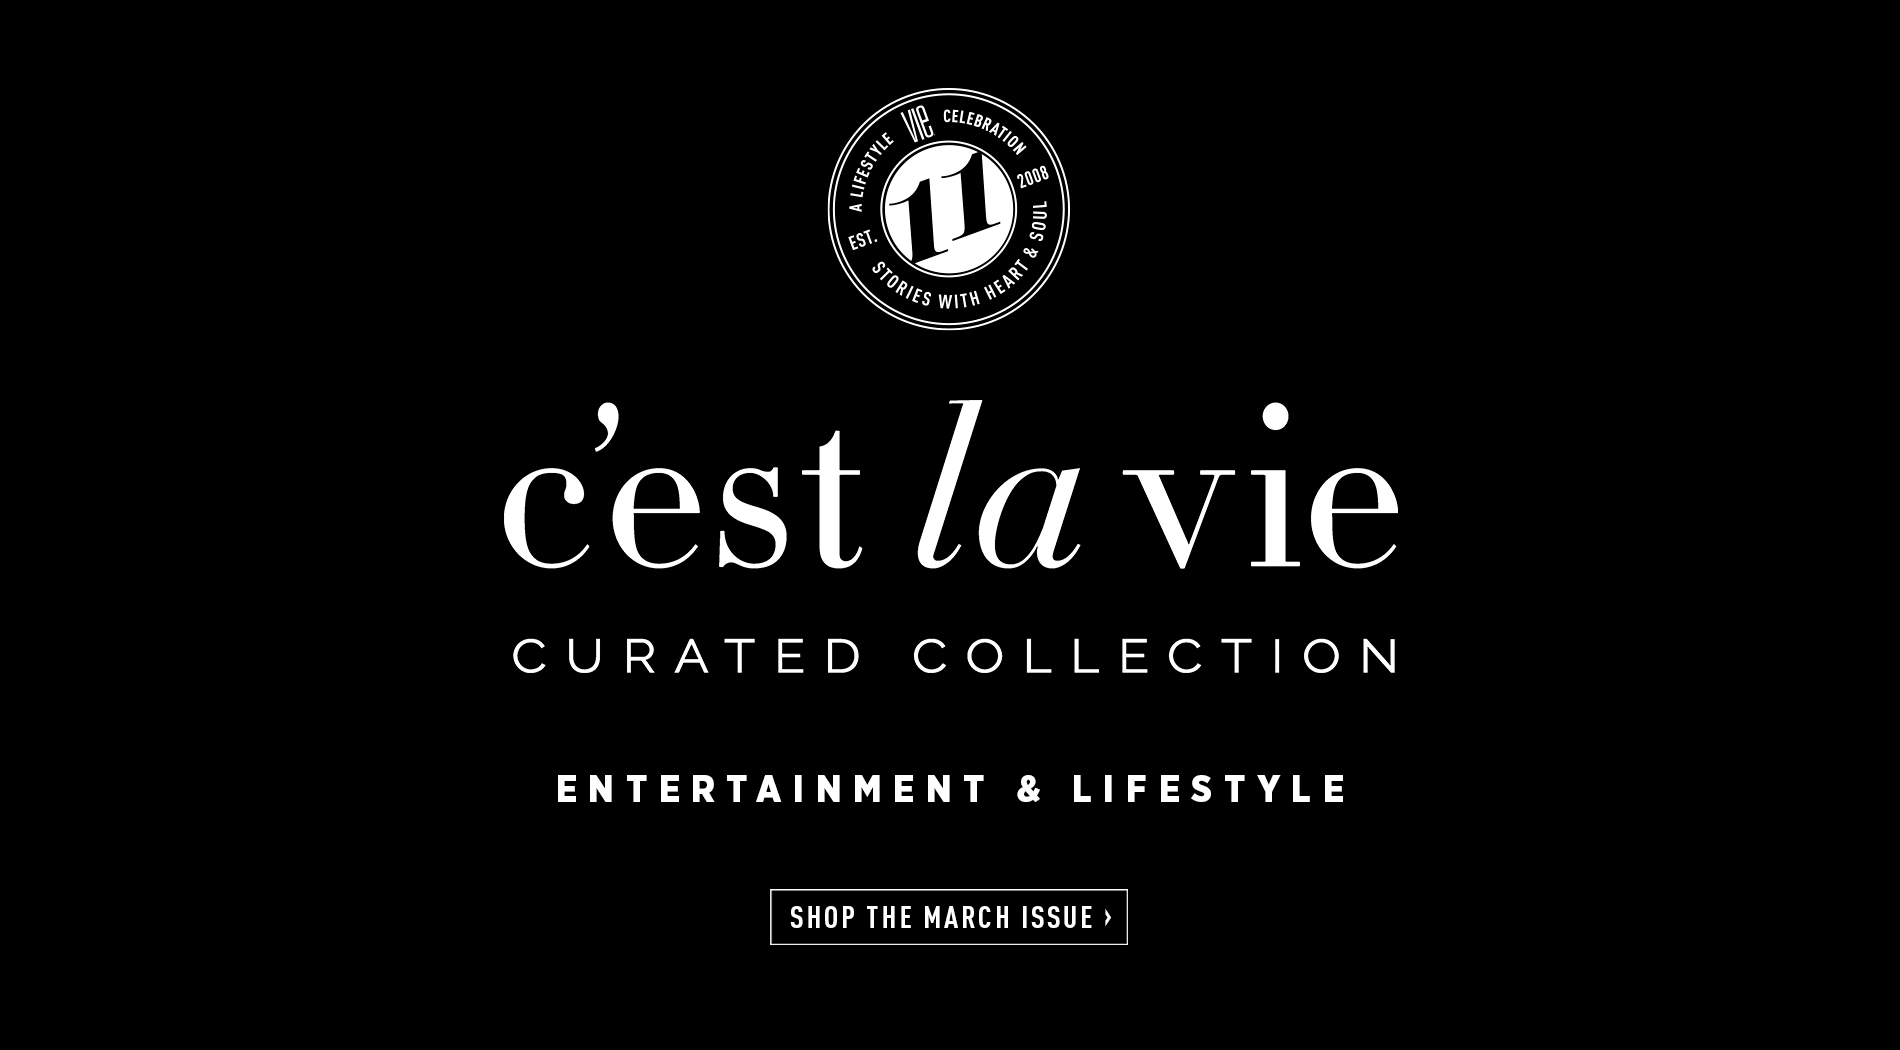 VIE Magazine - Special Entertainment Edition - March 2019 - C'est La VIE